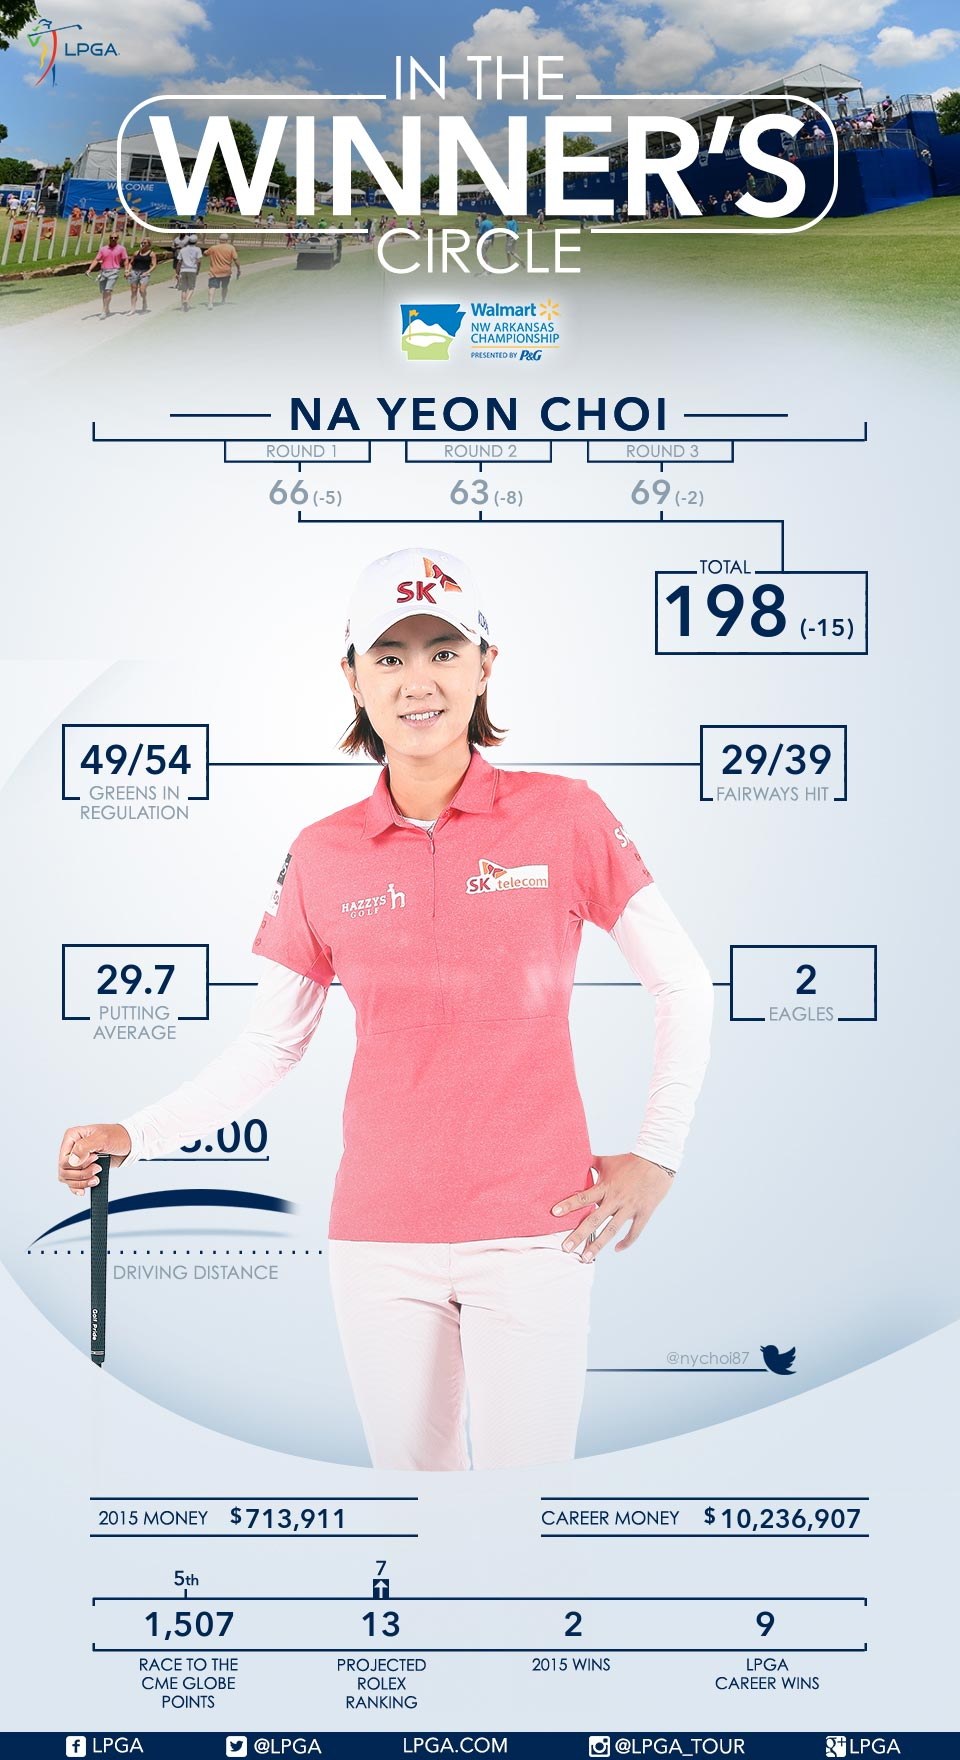 Na Yeon Choi Wins the 2015 Walmart NW Arkansas Championship